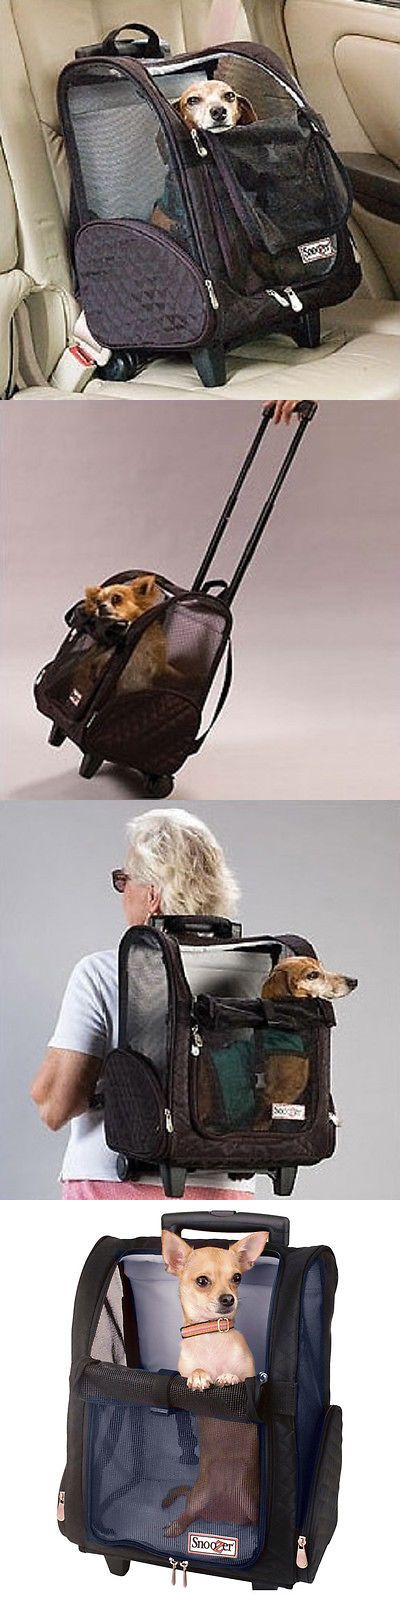 Carriers and Totes 177788: Airline Pet Carrier Under Seat Small Dog Cat Travel Bag Approved Backpack Car -> BUY IT NOW ONLY: $139.99 on eBay!